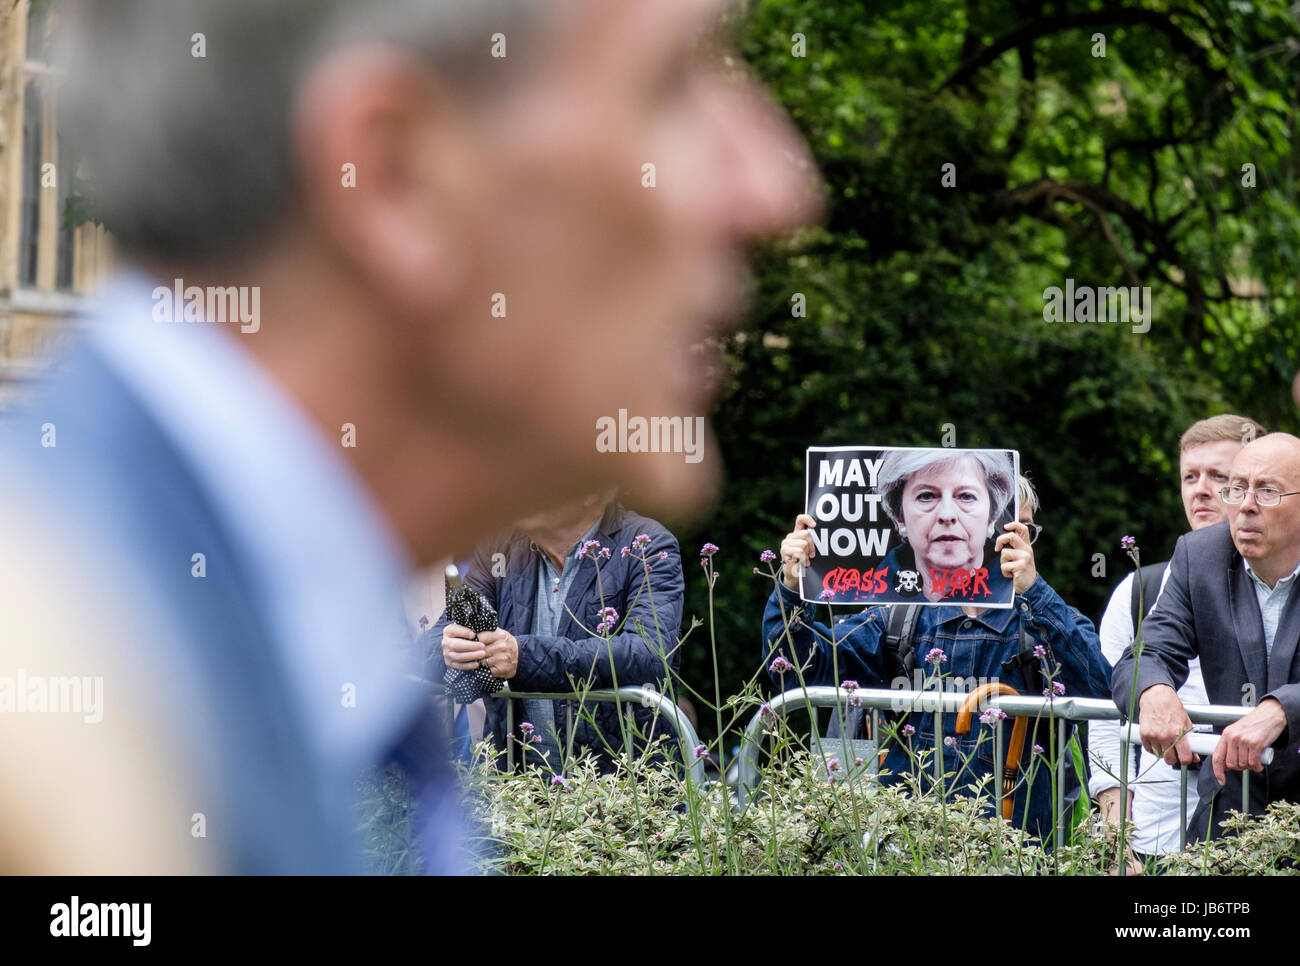 London, UK. 9th June, 2017. Anti Theresa May protester displays placard demanding her resignation following the - Stock Image